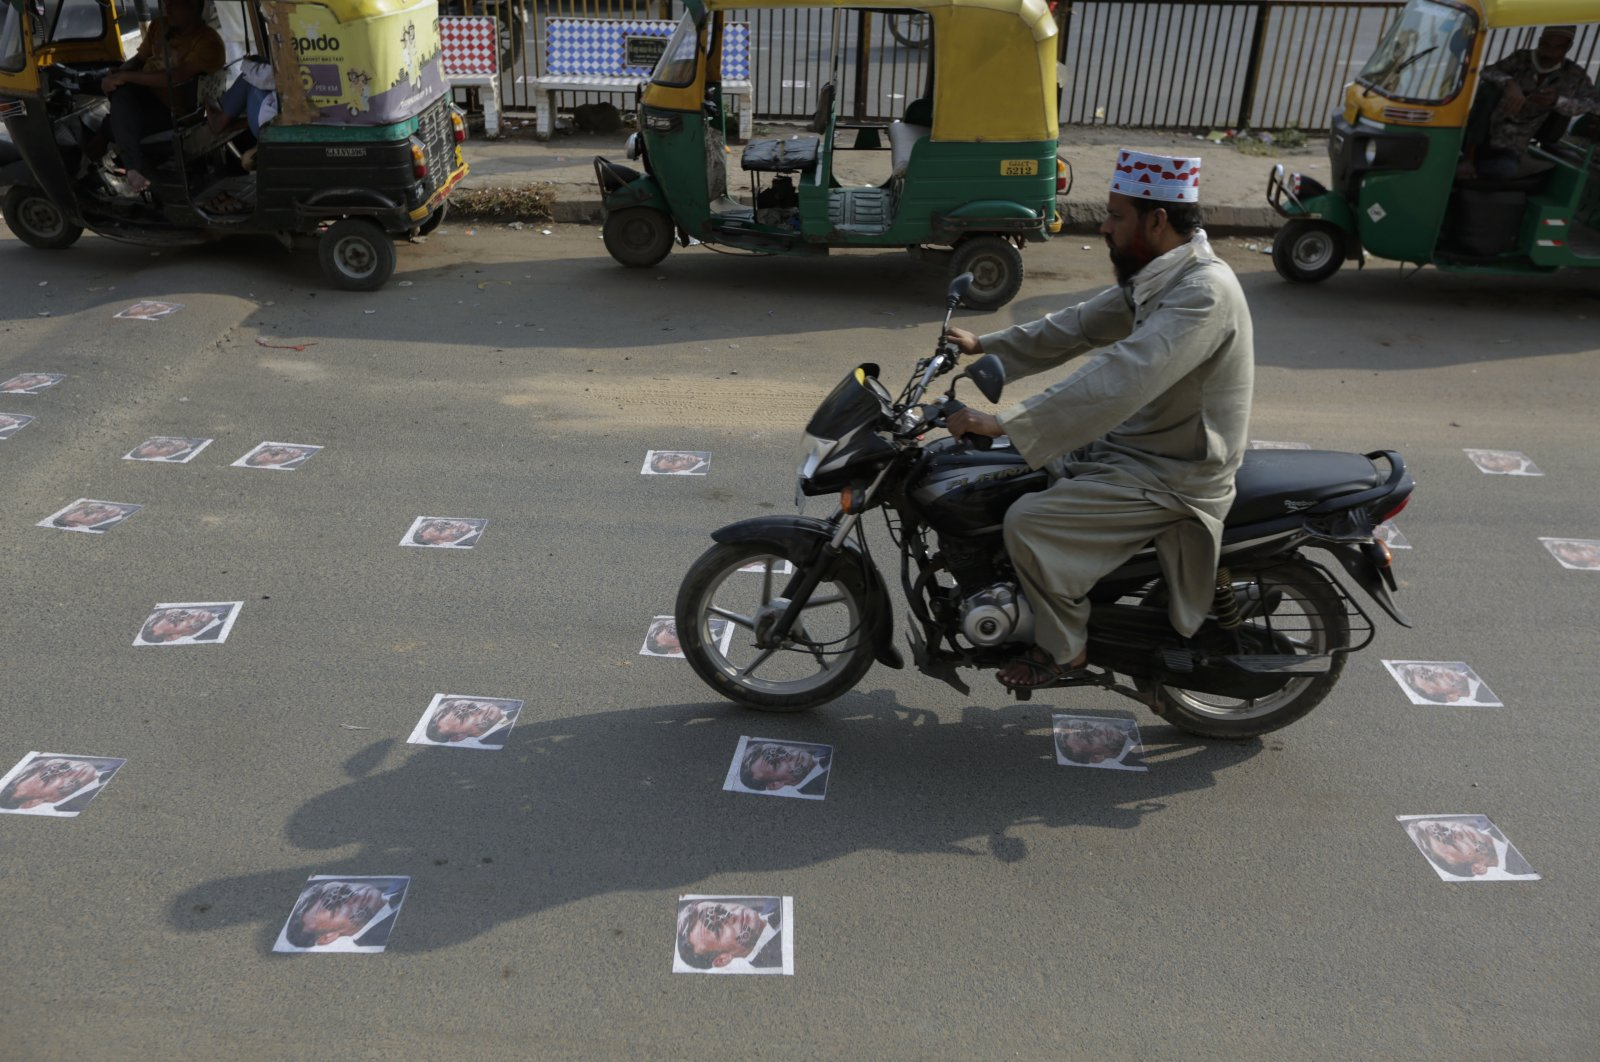 An Indian commuter drives over defaced images of French President Emmanuel Macron pasted on a road by protestors in Ahmedabad, India, Nov. 1, 2020. (AP Photo)